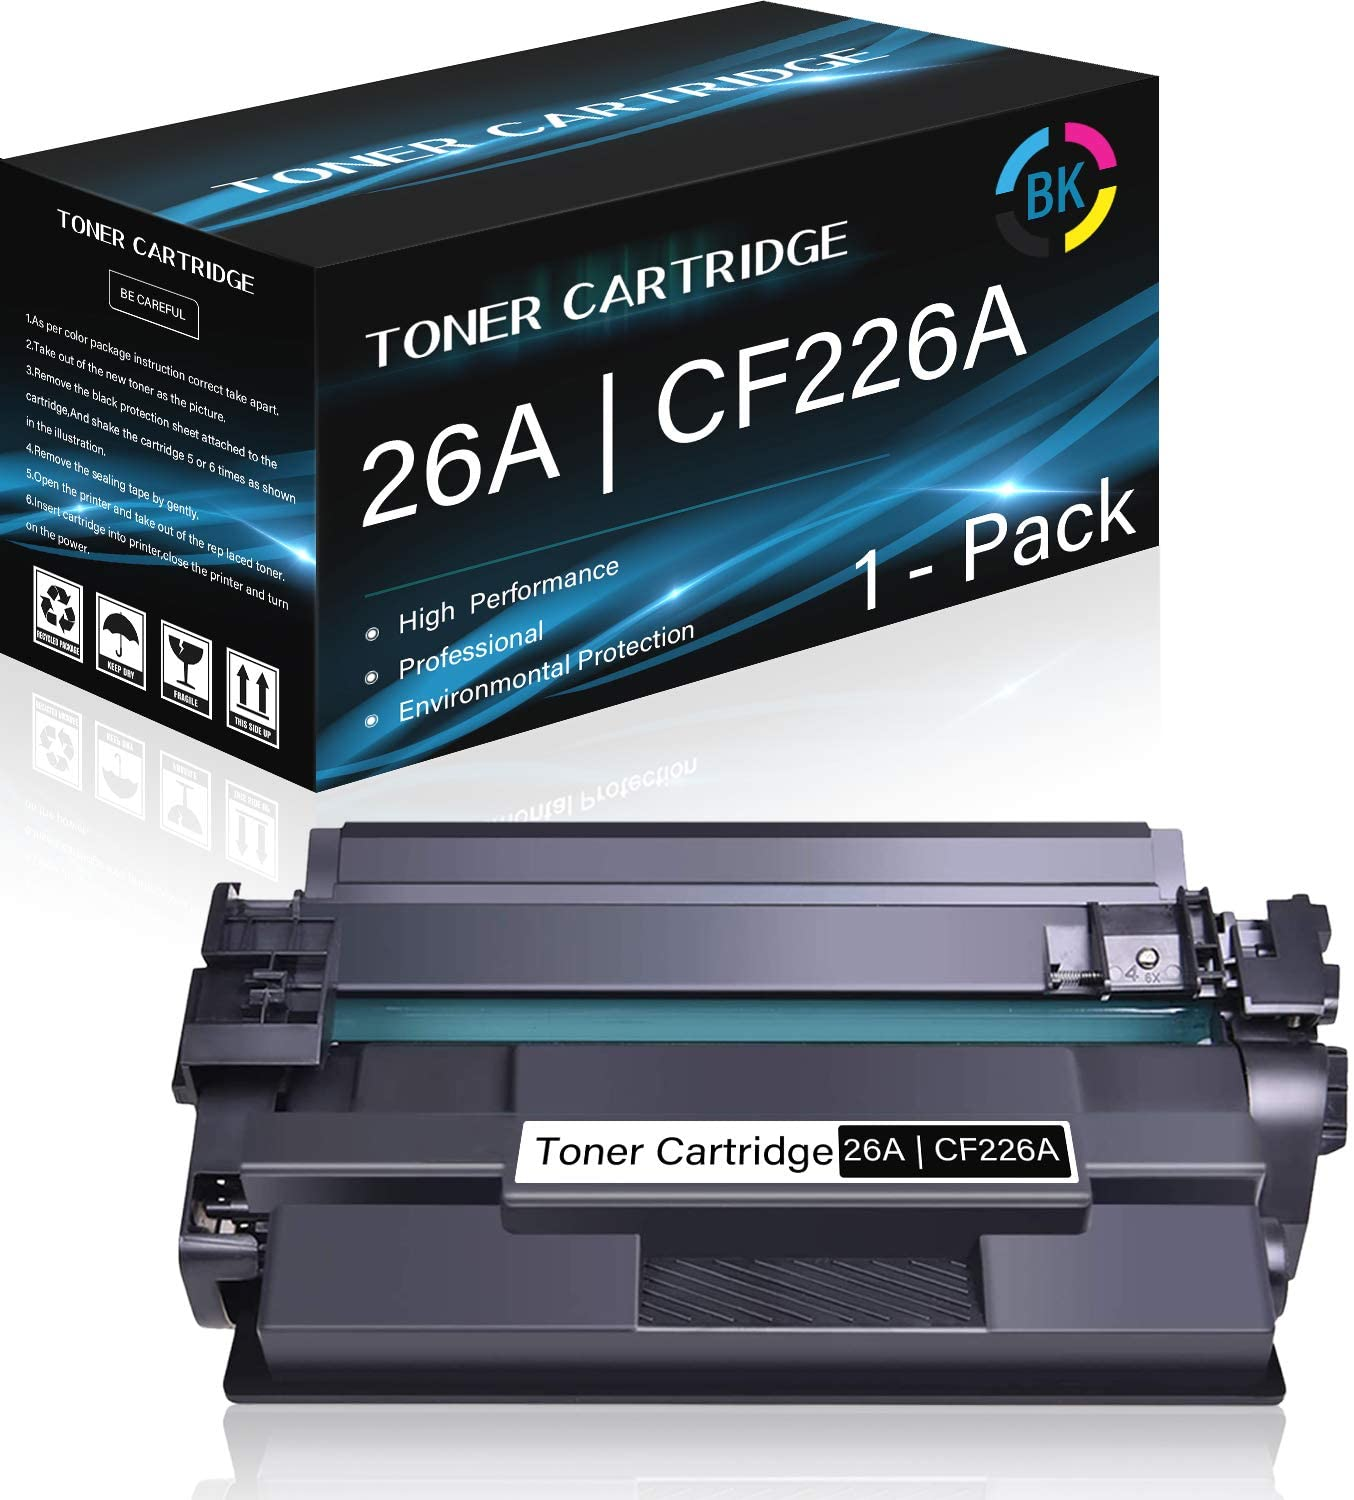 1 Pack 26A   CF226A (Black) Compatible High Yield Toner Cartridge Replacement for HP Laserjet M402d M402n M402dn M402dw M402m M402dne M426dw M426fdn M426fdw M426m Printers,Sold by Thurink.